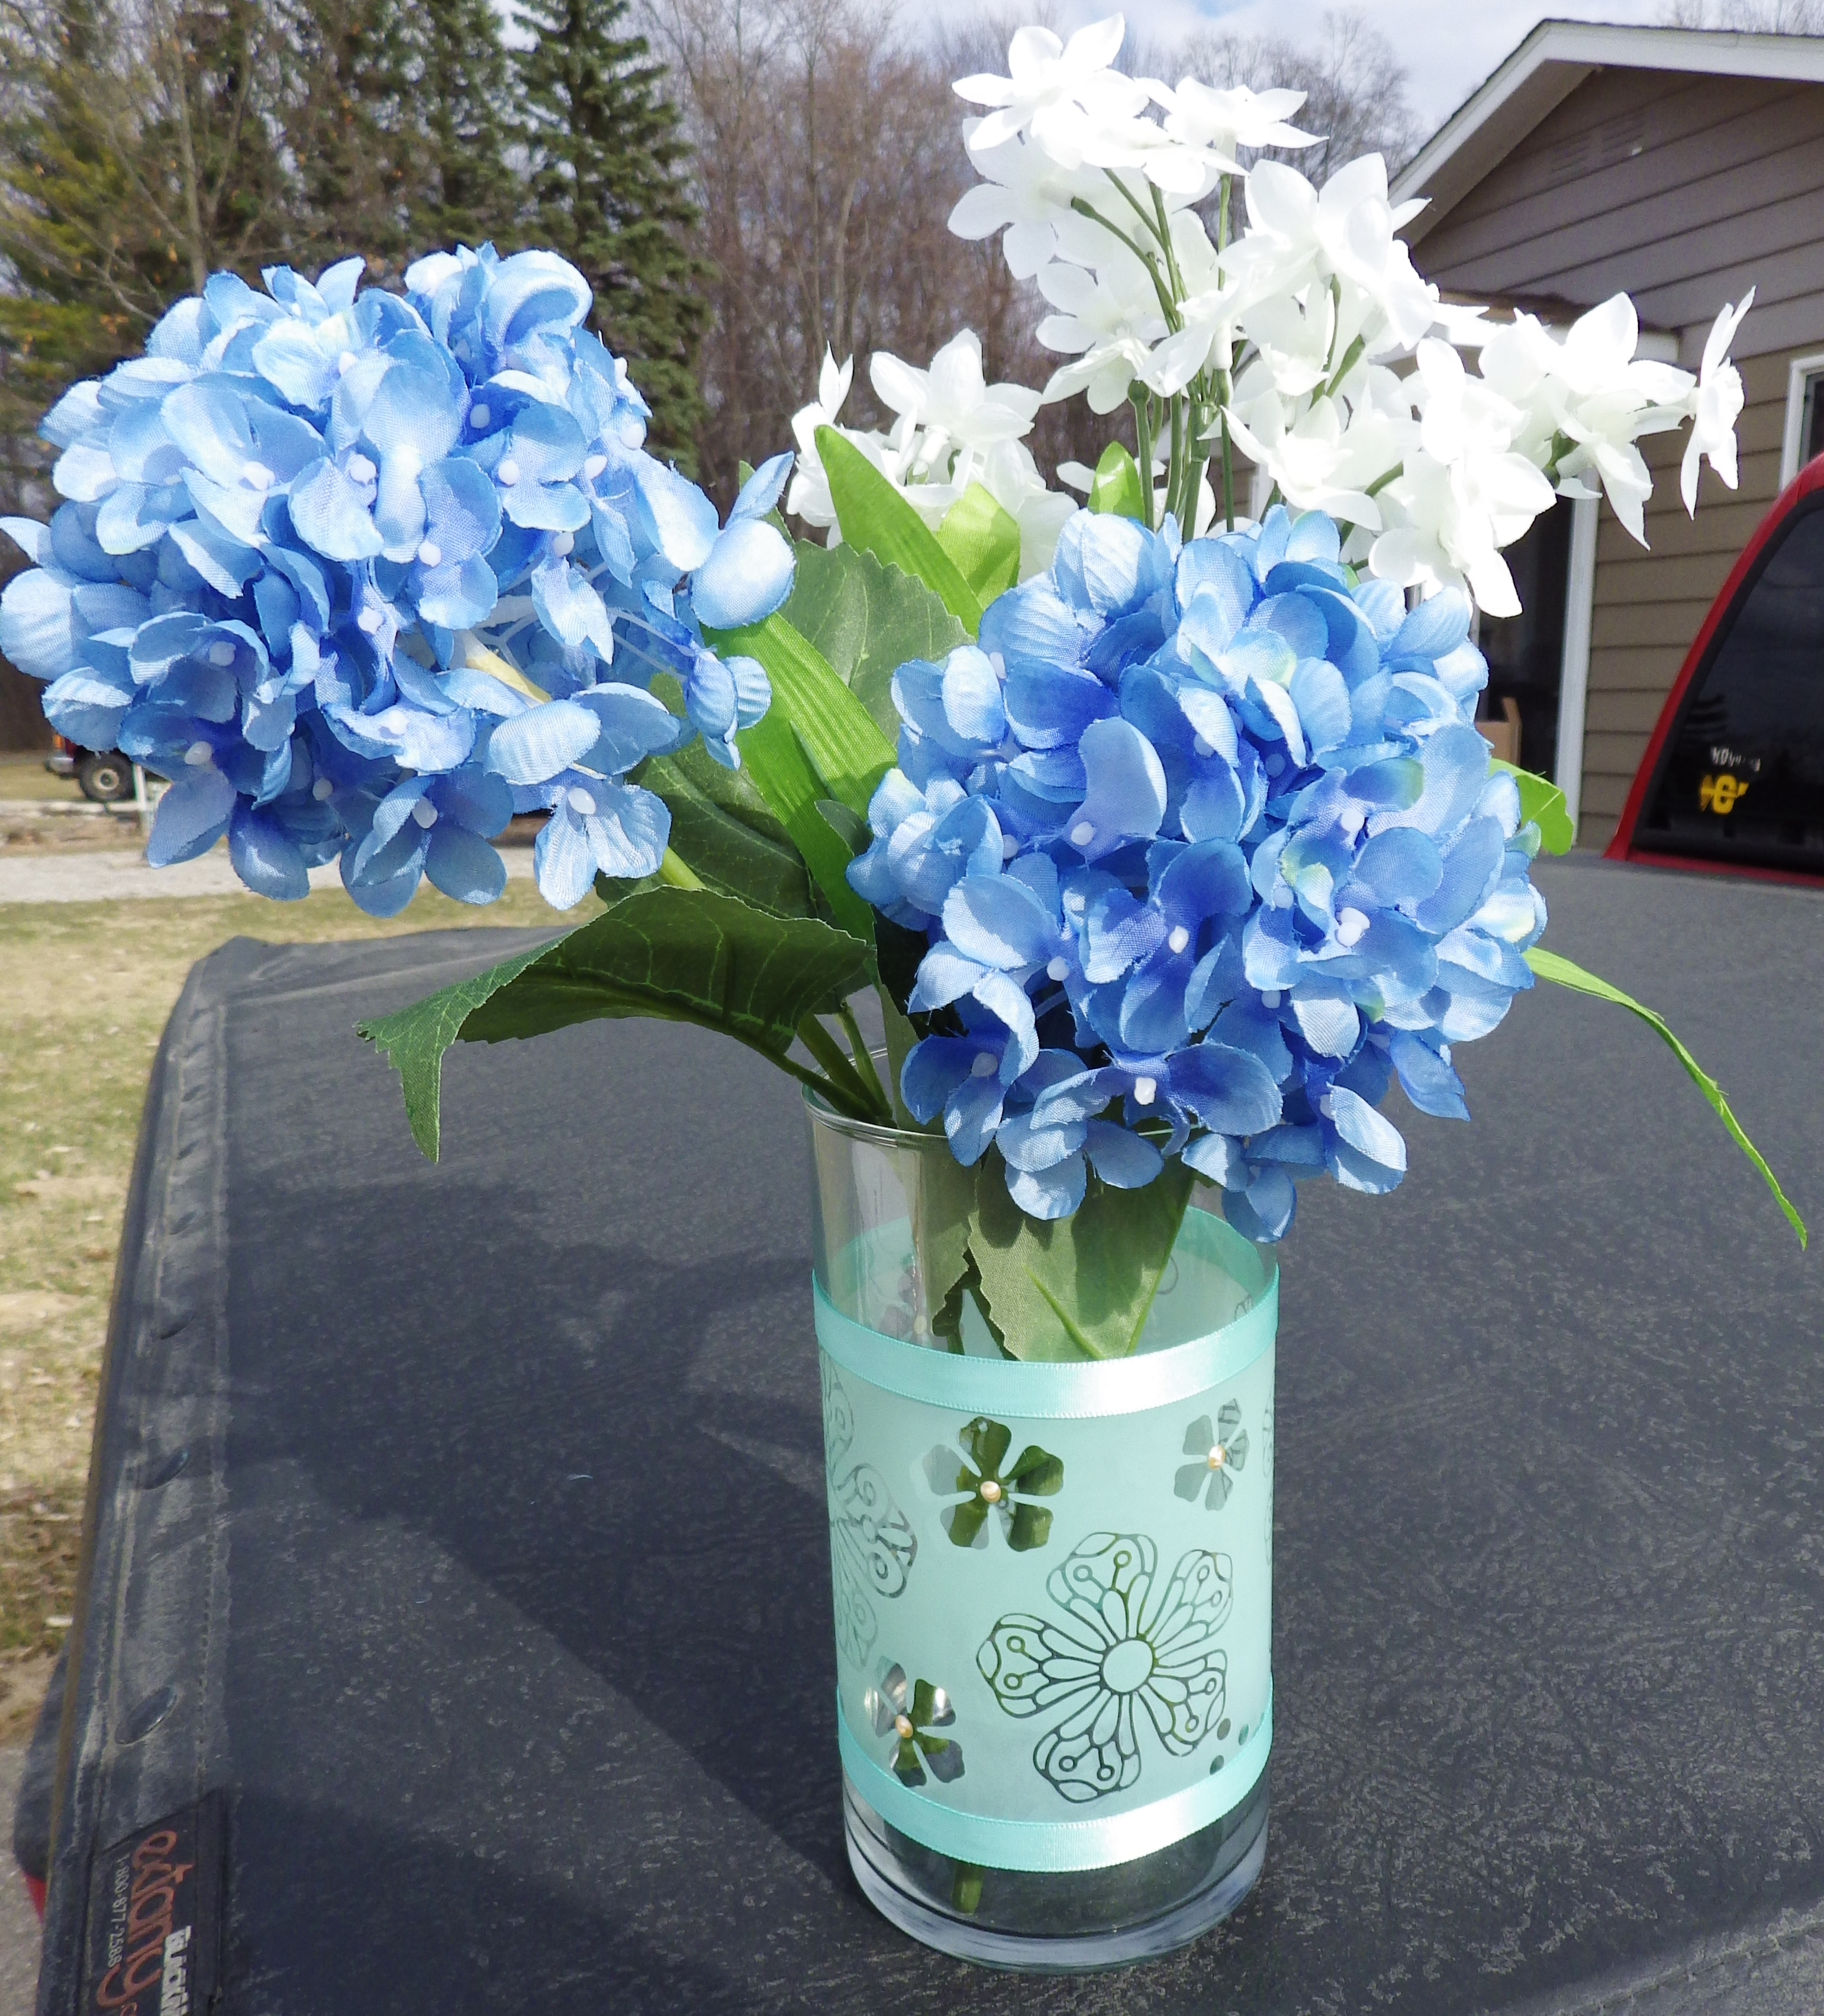 Candy spiegel etched glass vase